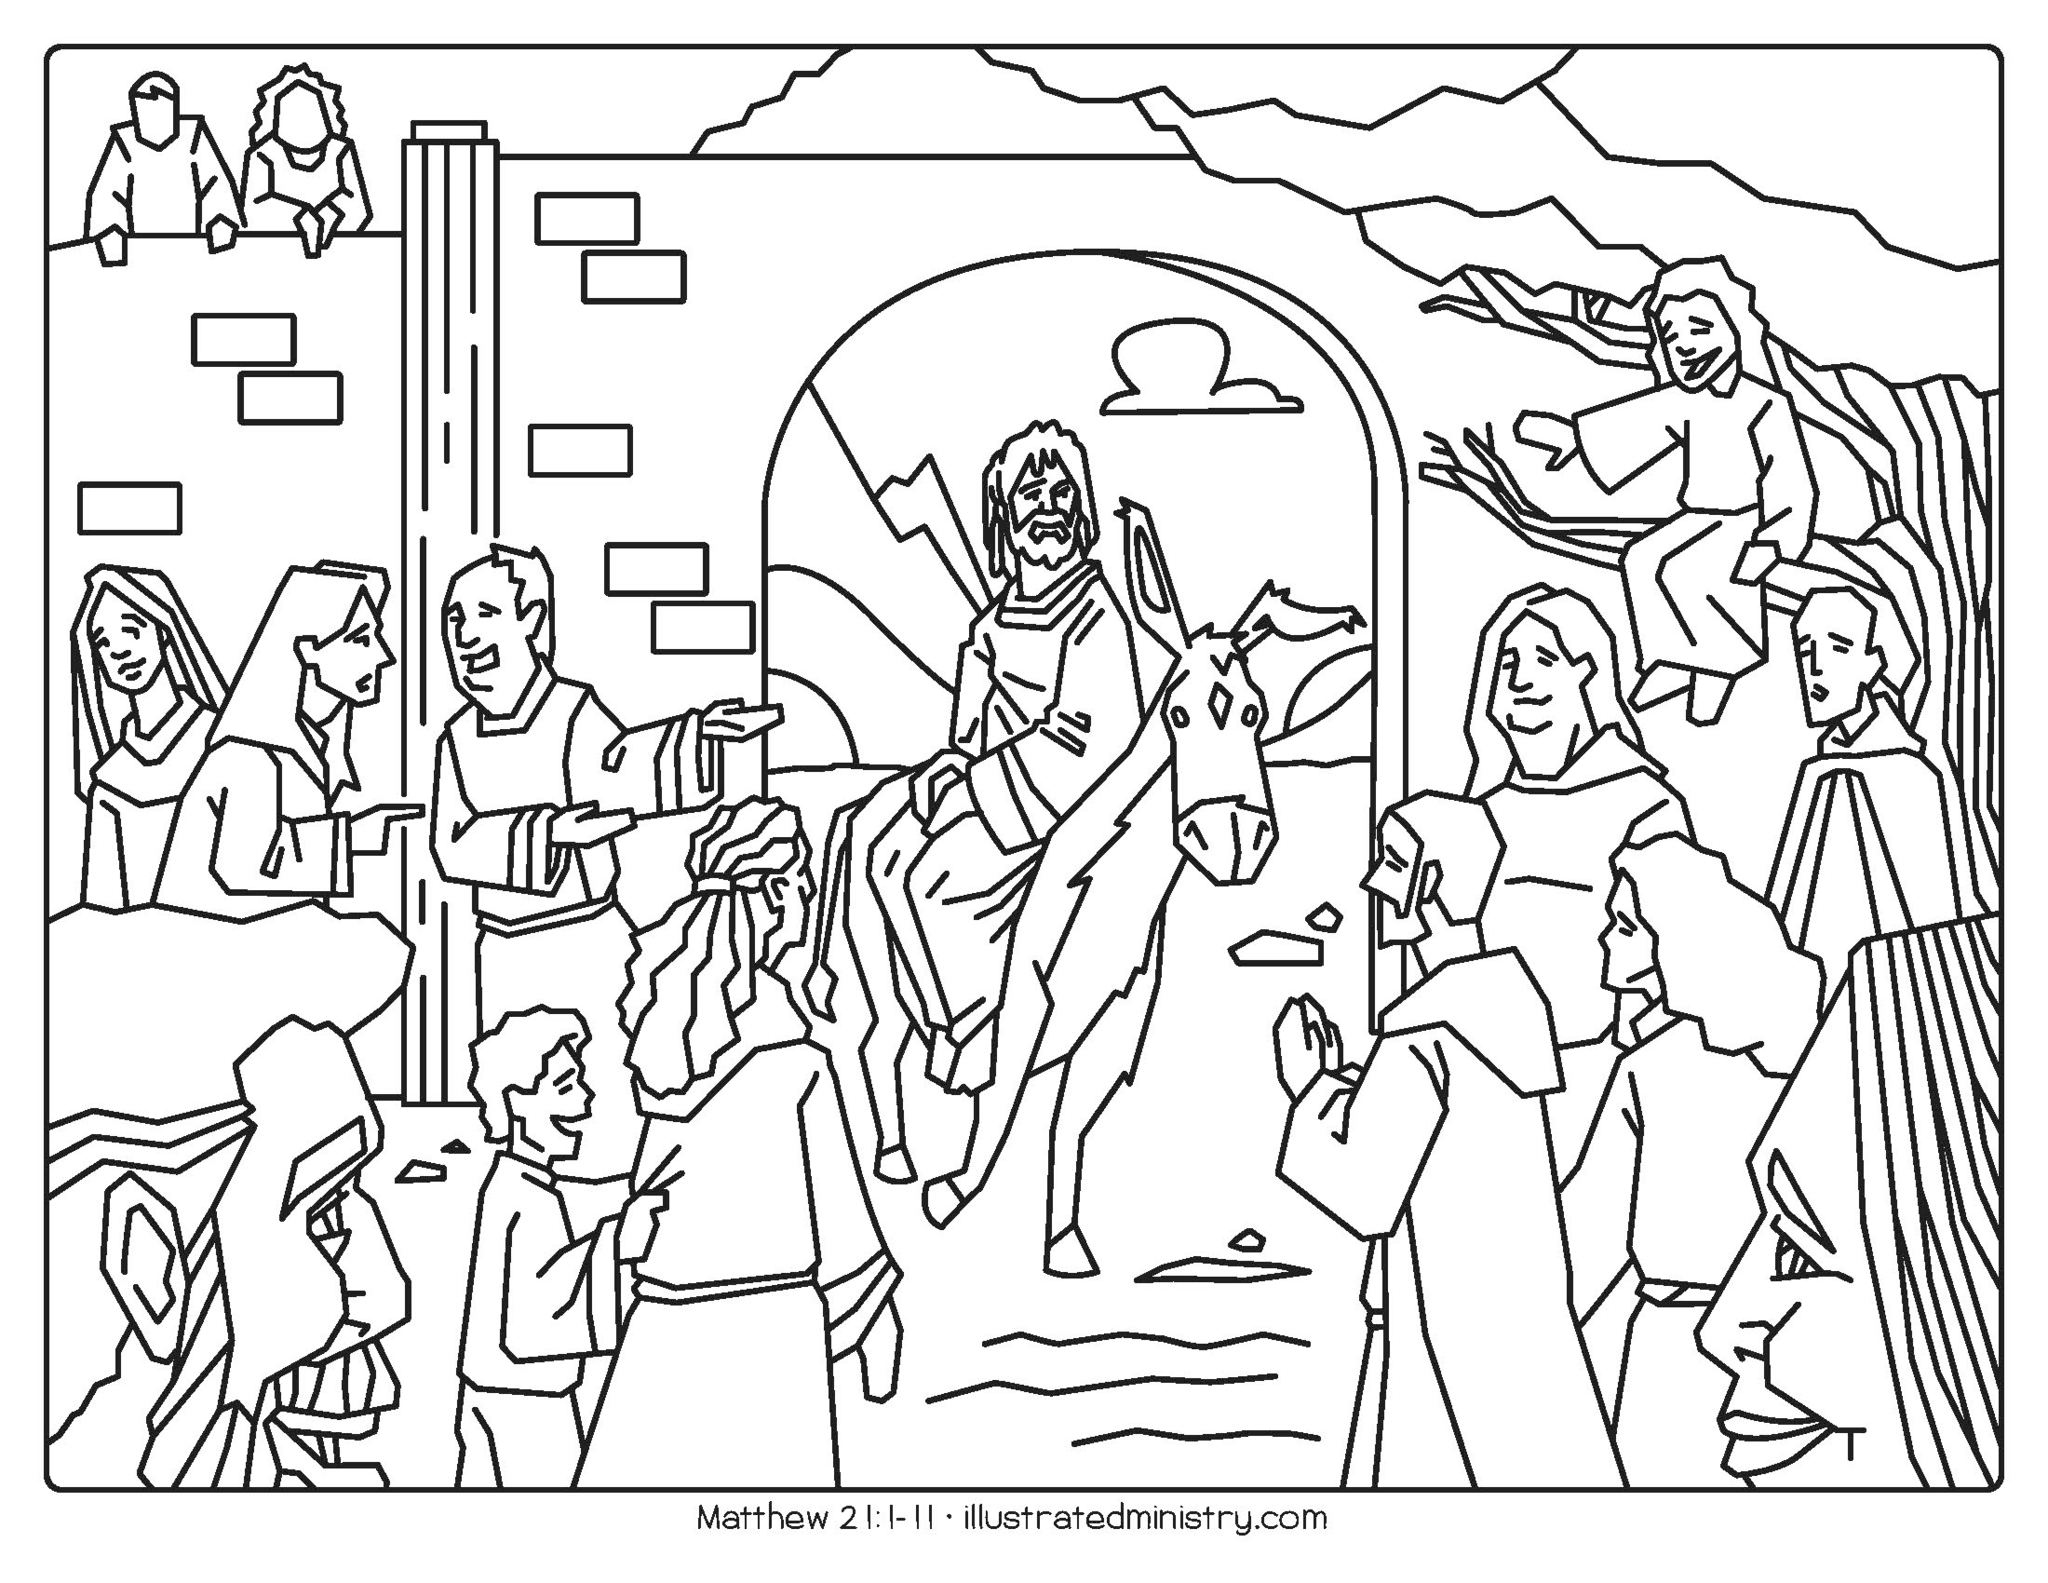 bible story coloring pages bible story coloring pages fall 2018 illustrated ministry bible story coloring pages